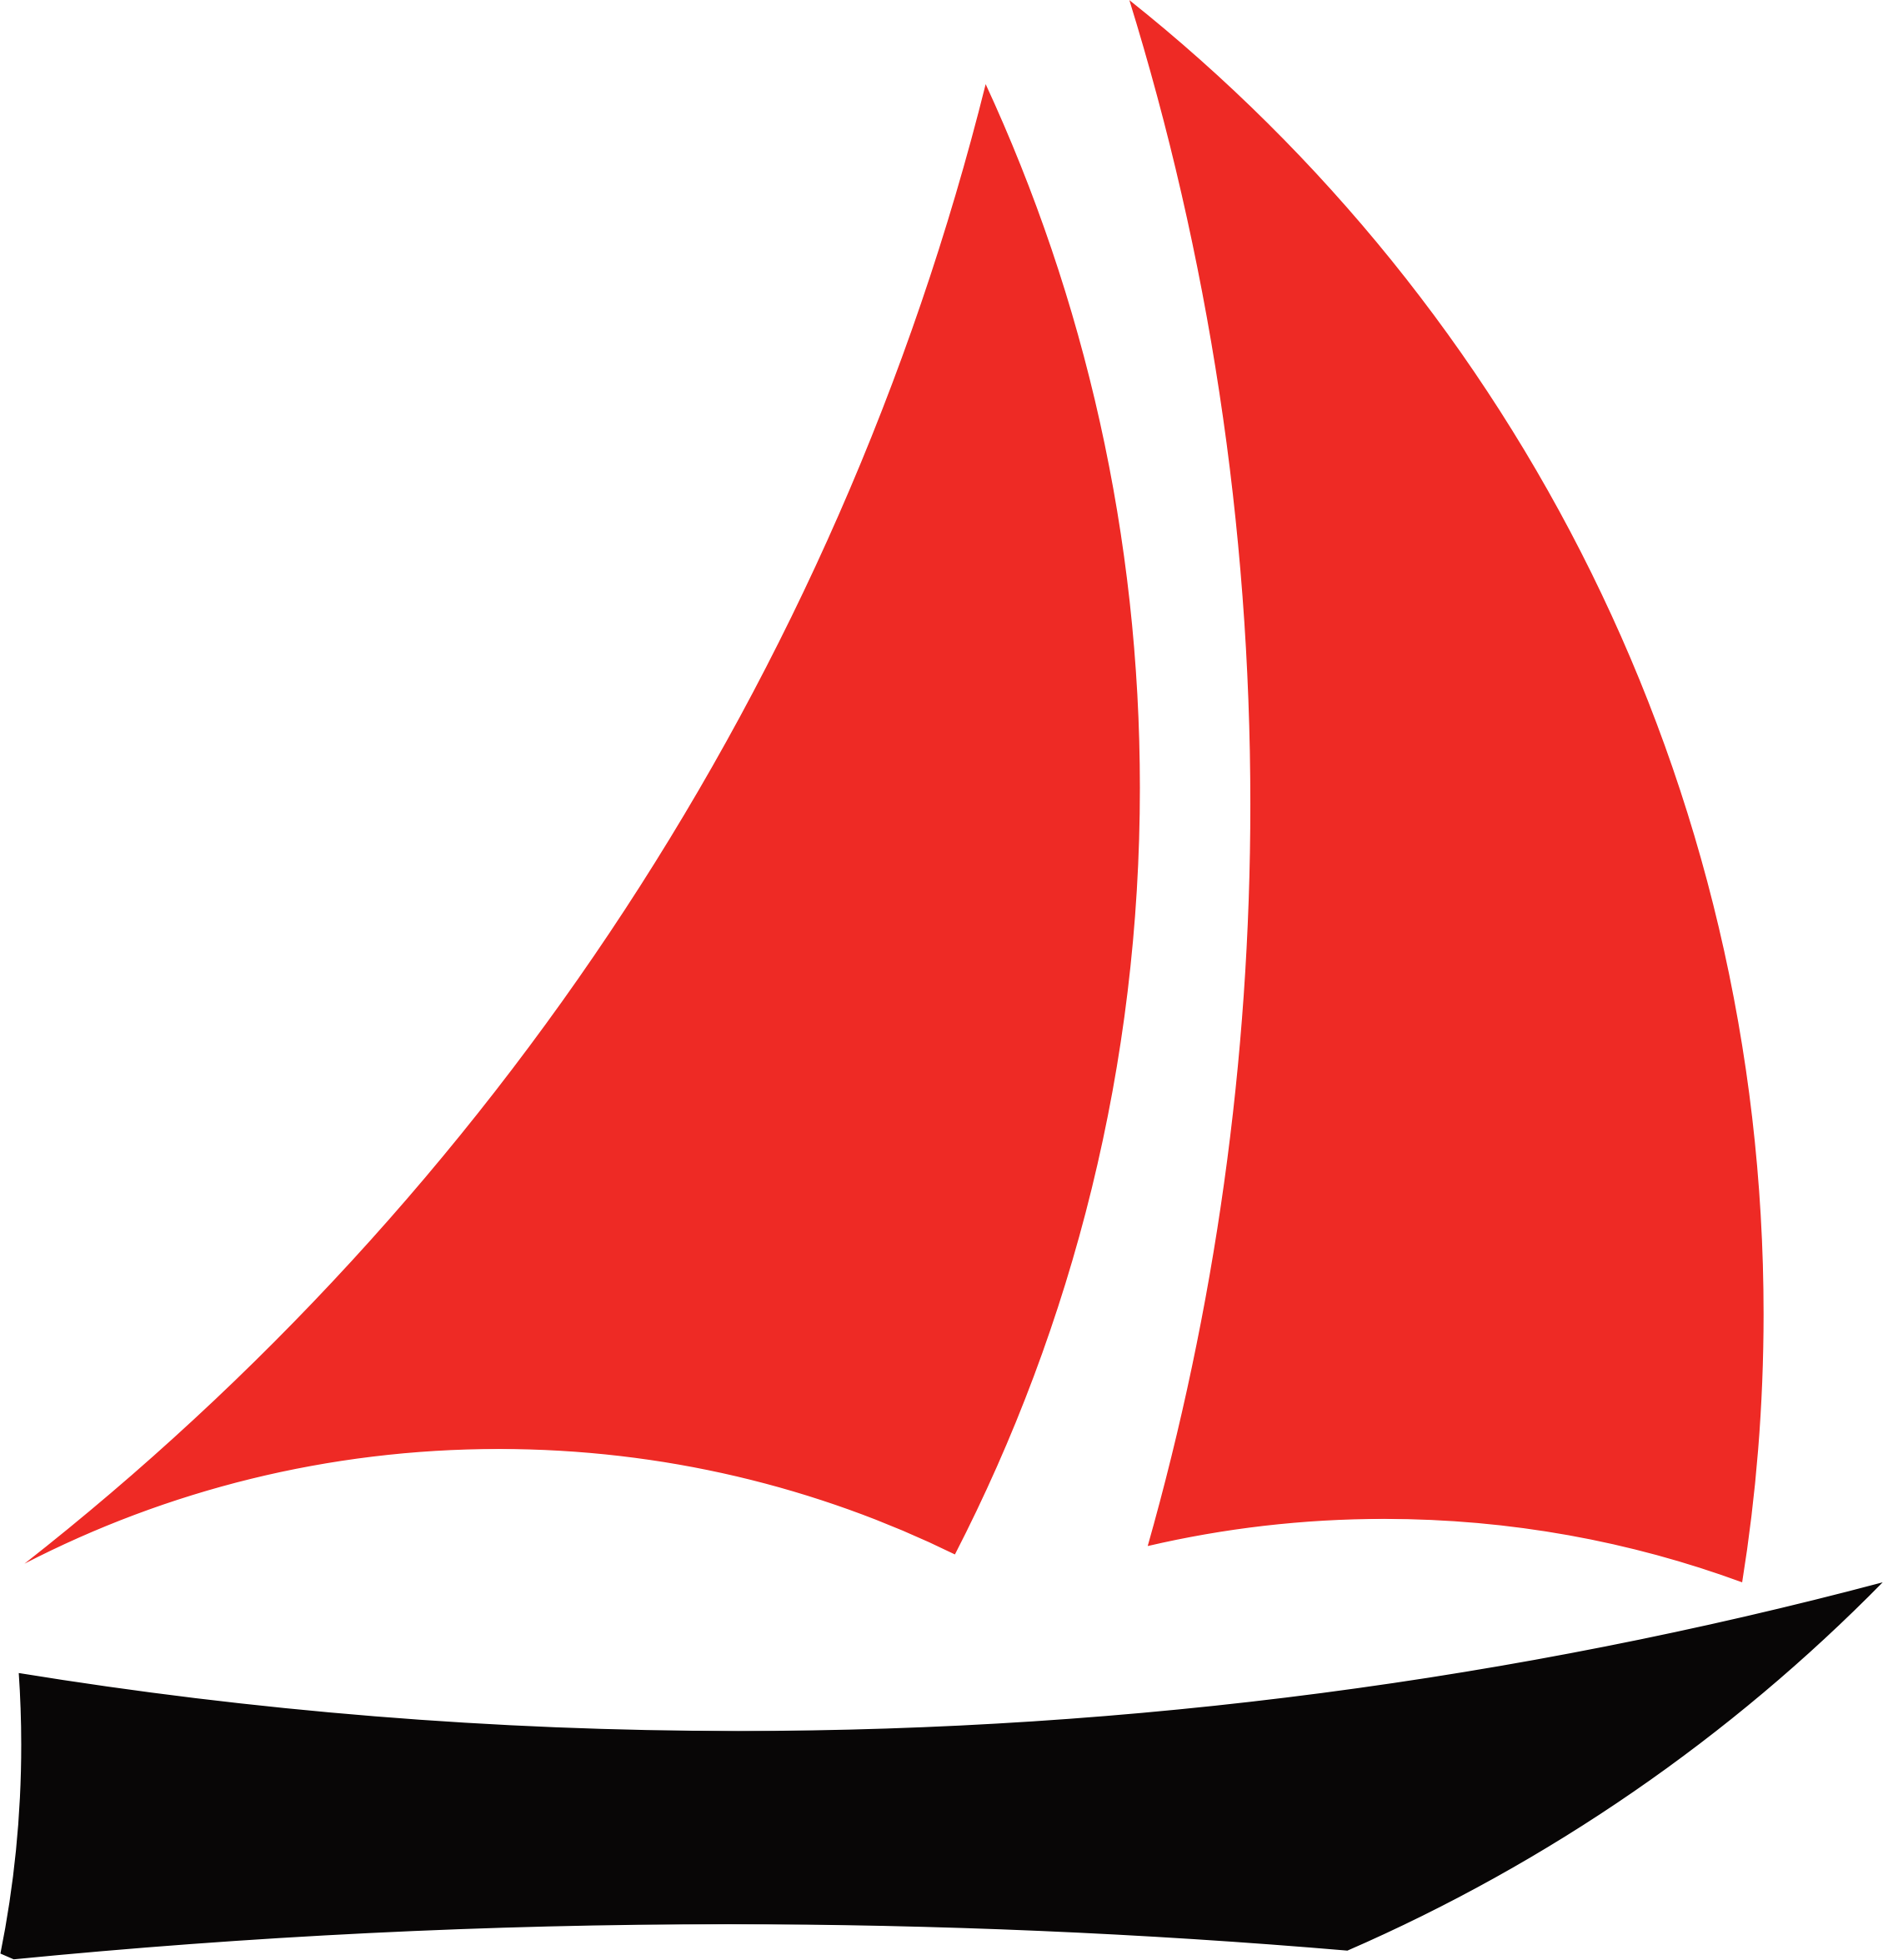 2259x2351 Gridct Boat Logo By @elis, Gridct Boat Logo, On @openclipart